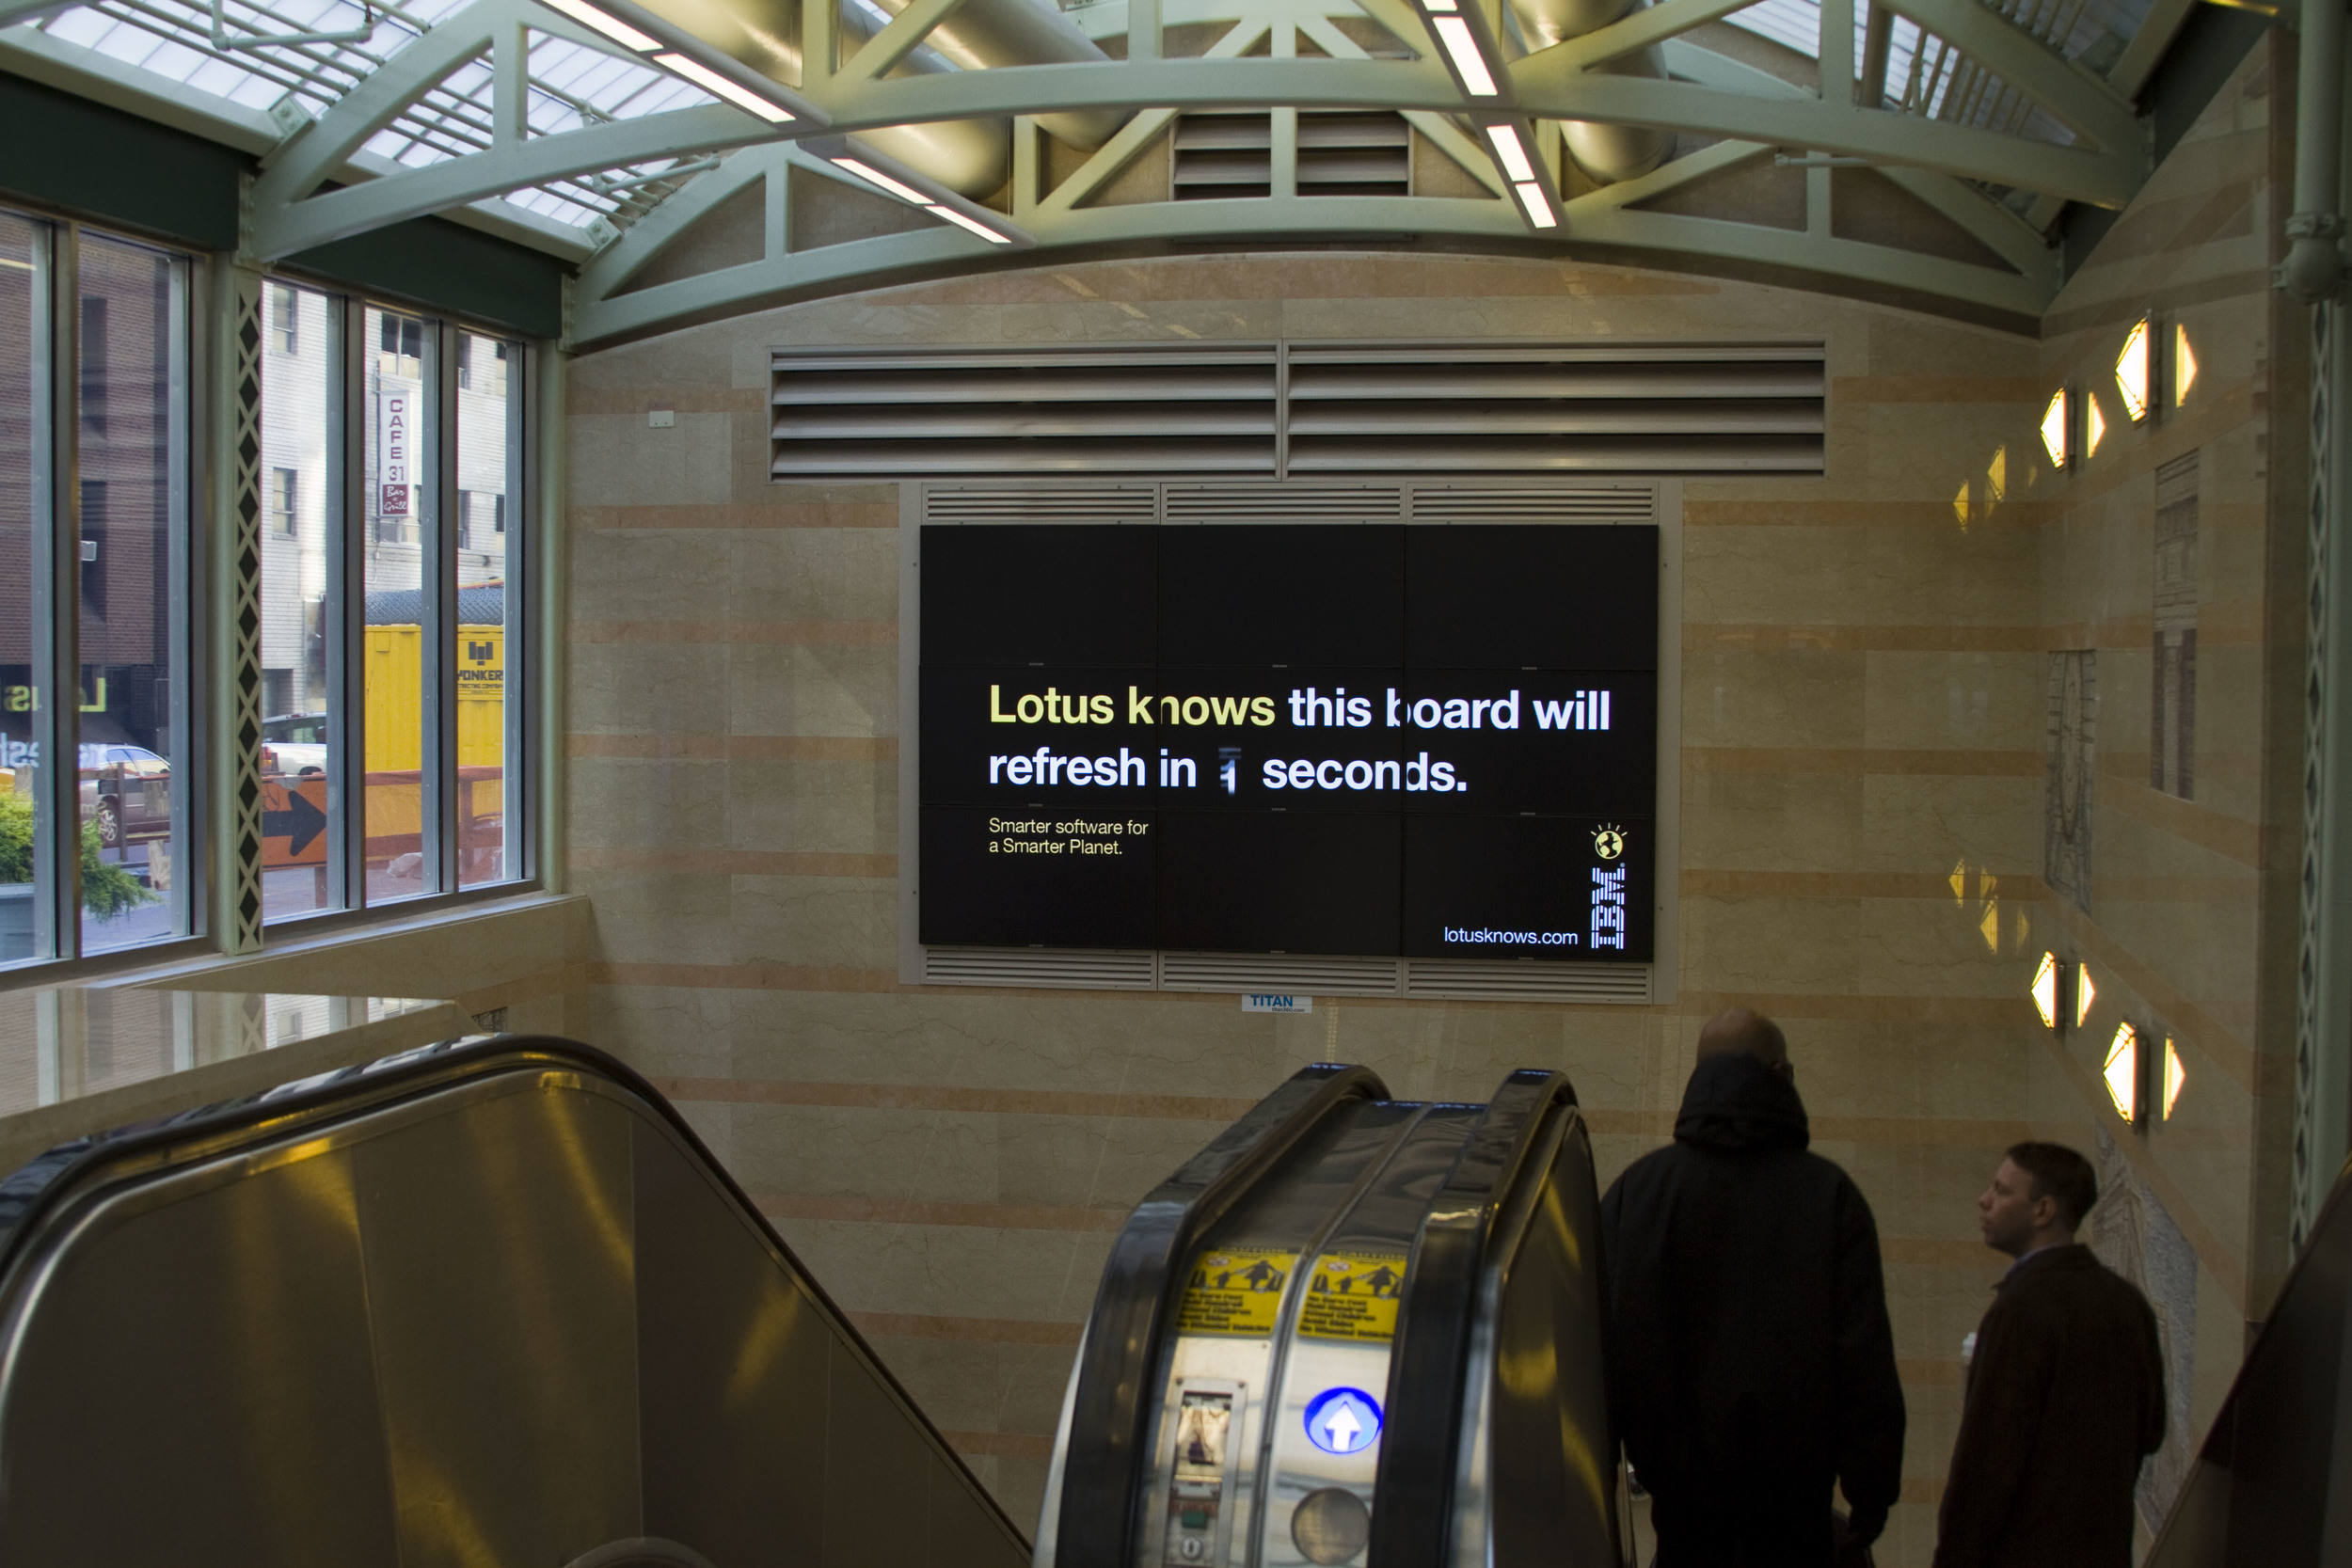 """Not all media was """"smart"""". This board in Penn Station changed ads every sixseconds, so we ran a line about it."""